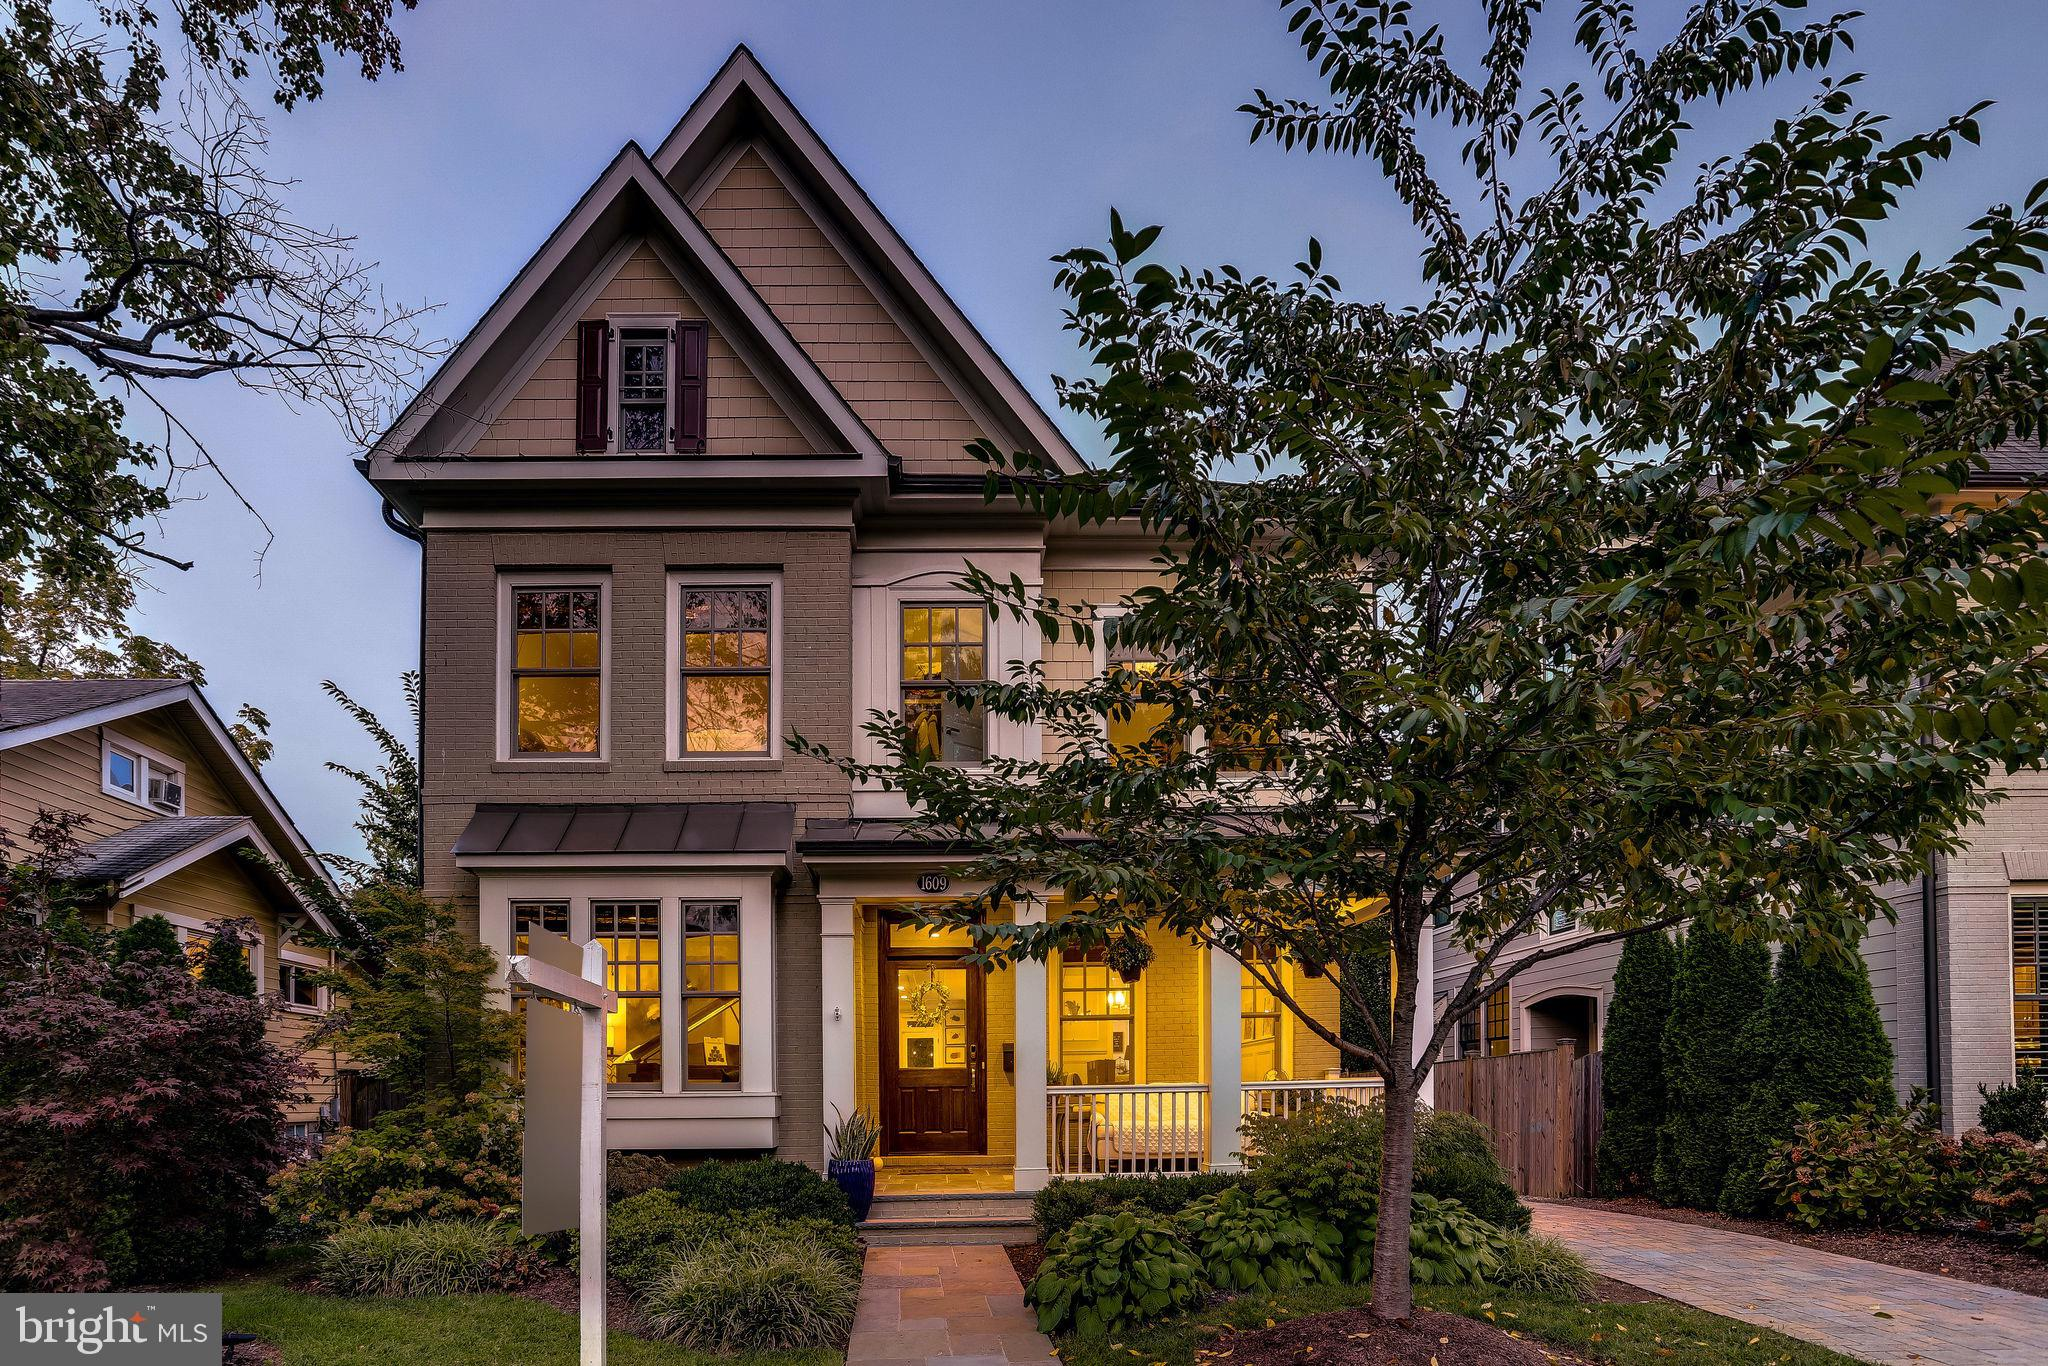 This luxurious Craftsman home, built in 2014, offers over 5,200 sq ft of space with Five bedrooms and Five and a Half bathrooms on Four finished levels. The home is inviting with impeccable craftsmanship and a large open floor plan for everyday living blended with exquisite details perfect for entertaining. Nothing was overlooked in the thoughtful finishes of this residence!   As you walk in this breathtaking home you are greeted with a beautiful foyer with tons of natural light. On your left is a conservatory, perfect for an office, music room or even a bar. To your right is a formal dining room complete with custom wood paneling and crown molding. As you continue through you will find the Gourmet chef's kitchen which is open to the breakfast and family rooms. The kitchen is appointed with top-of-the-line stainless steel appliances and superior finishes to include a large granite island, beautiful back splash and recessed lighting. The second level features an owners suite, complete with a generous sized master bedroom, his and hers walk-in-closets, a spa-like bathroom with dual sinks, soaking tub and walk-in shower. Additionally, there are three more bedrooms and two full bathrooms. Two of the bedrooms meet with a Jack & Jill bathroom and the other is complete with an ensuite bathroom. Making your way to the top floor you will find a spacious area perfect for an office, play room or family space.  Heading down to the basement you will find an additional bedroom and bathroom, spacious family area and tons of storage!   Situated in the highly desirable Lyon Village, just one block from the Clarendon Metro Station and within walking distance to a variety of shops, restaurants, transportation, Whole Foods & Trader Joes, this home is in a prime location. This home is one you need to experience in person - do not let this opportunity pass you by!!